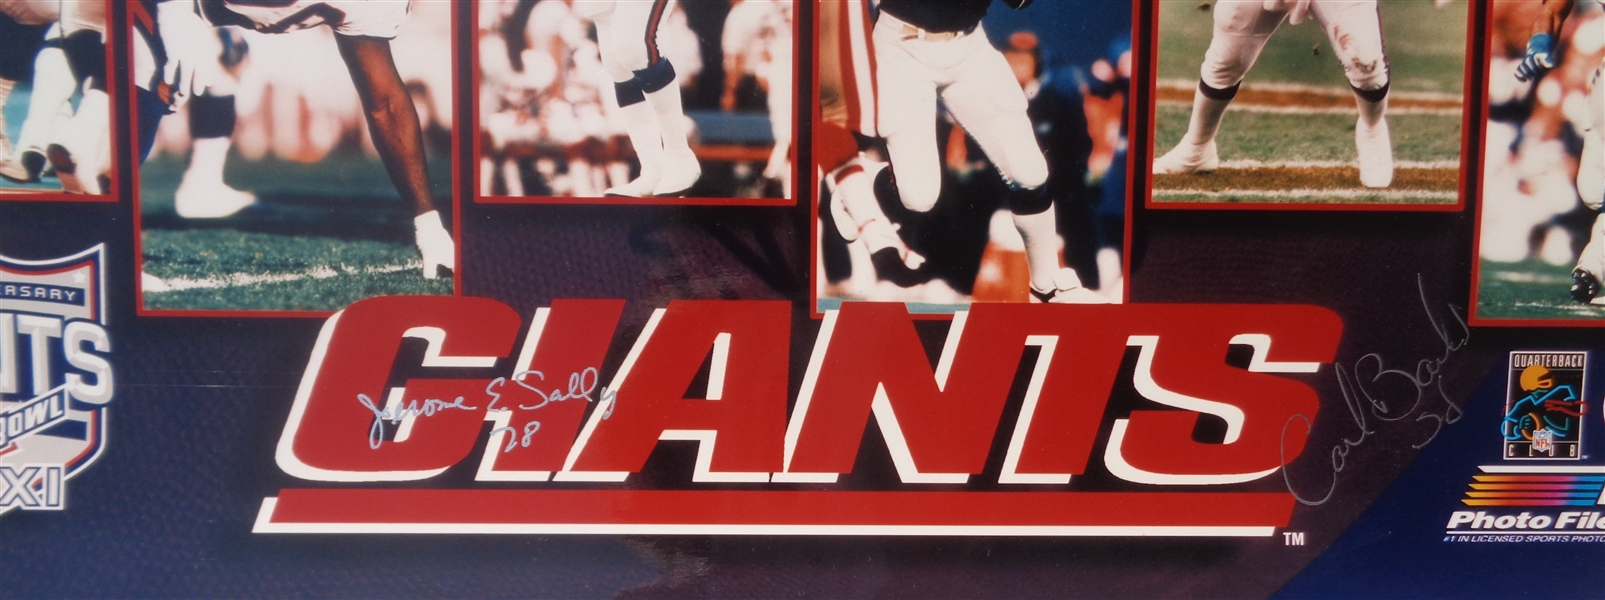 NY Giants 1986 Super Bowl Champions 16x20 Collage Photo Signed by Sally & Banks NFL Licensed NO RESERVE